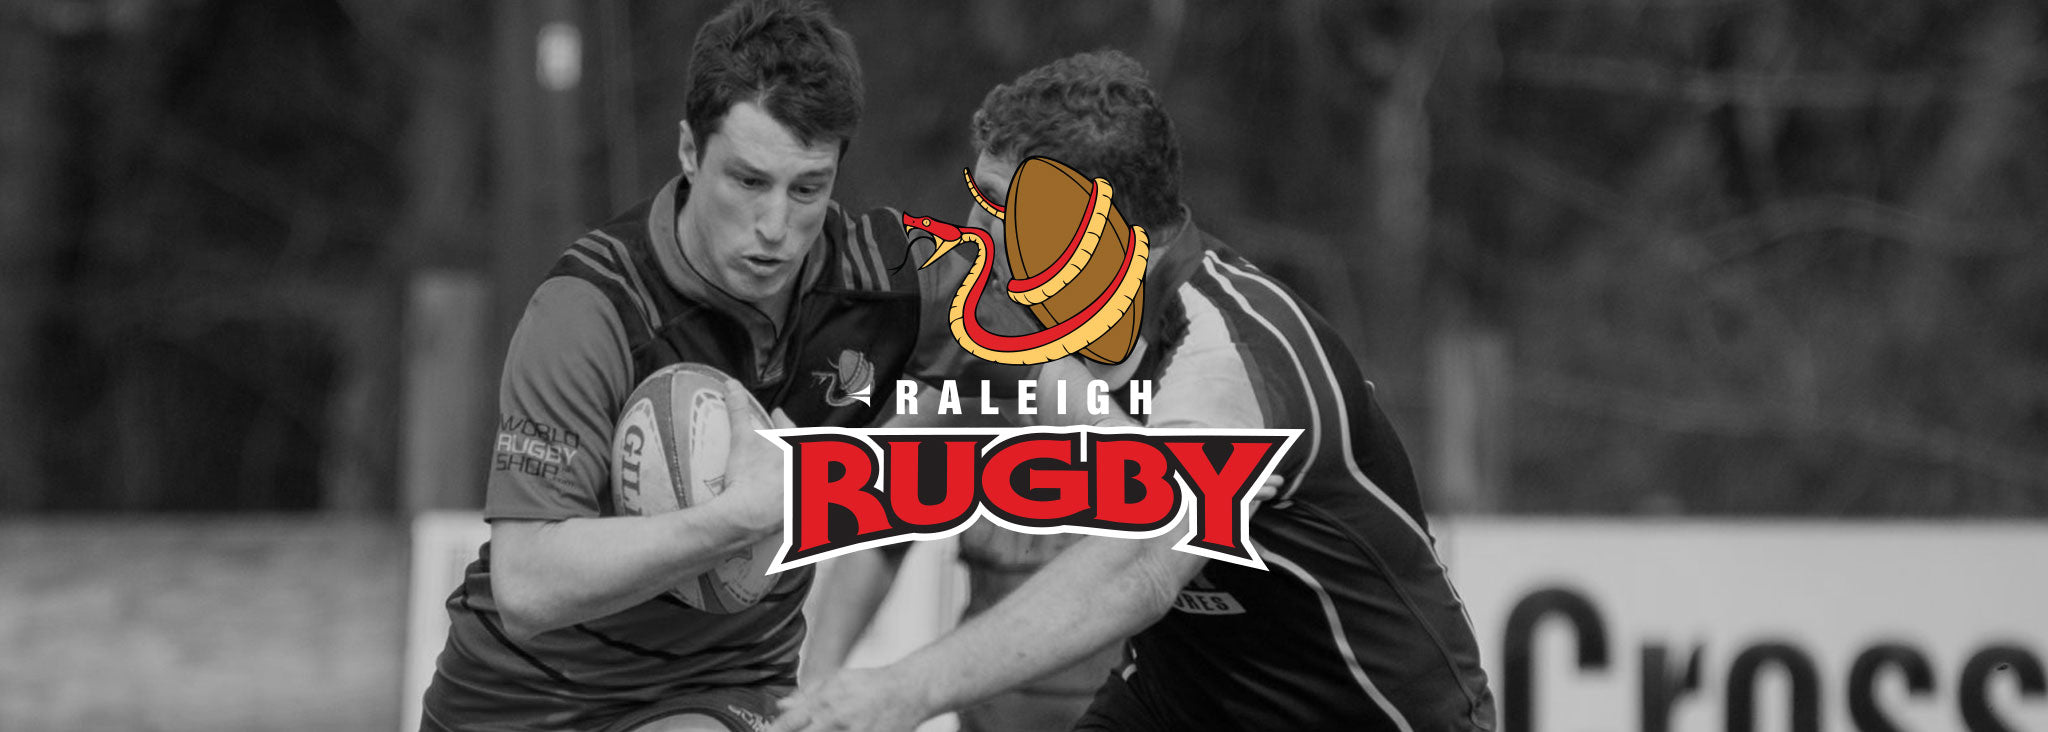 Raleigh Rugby Club